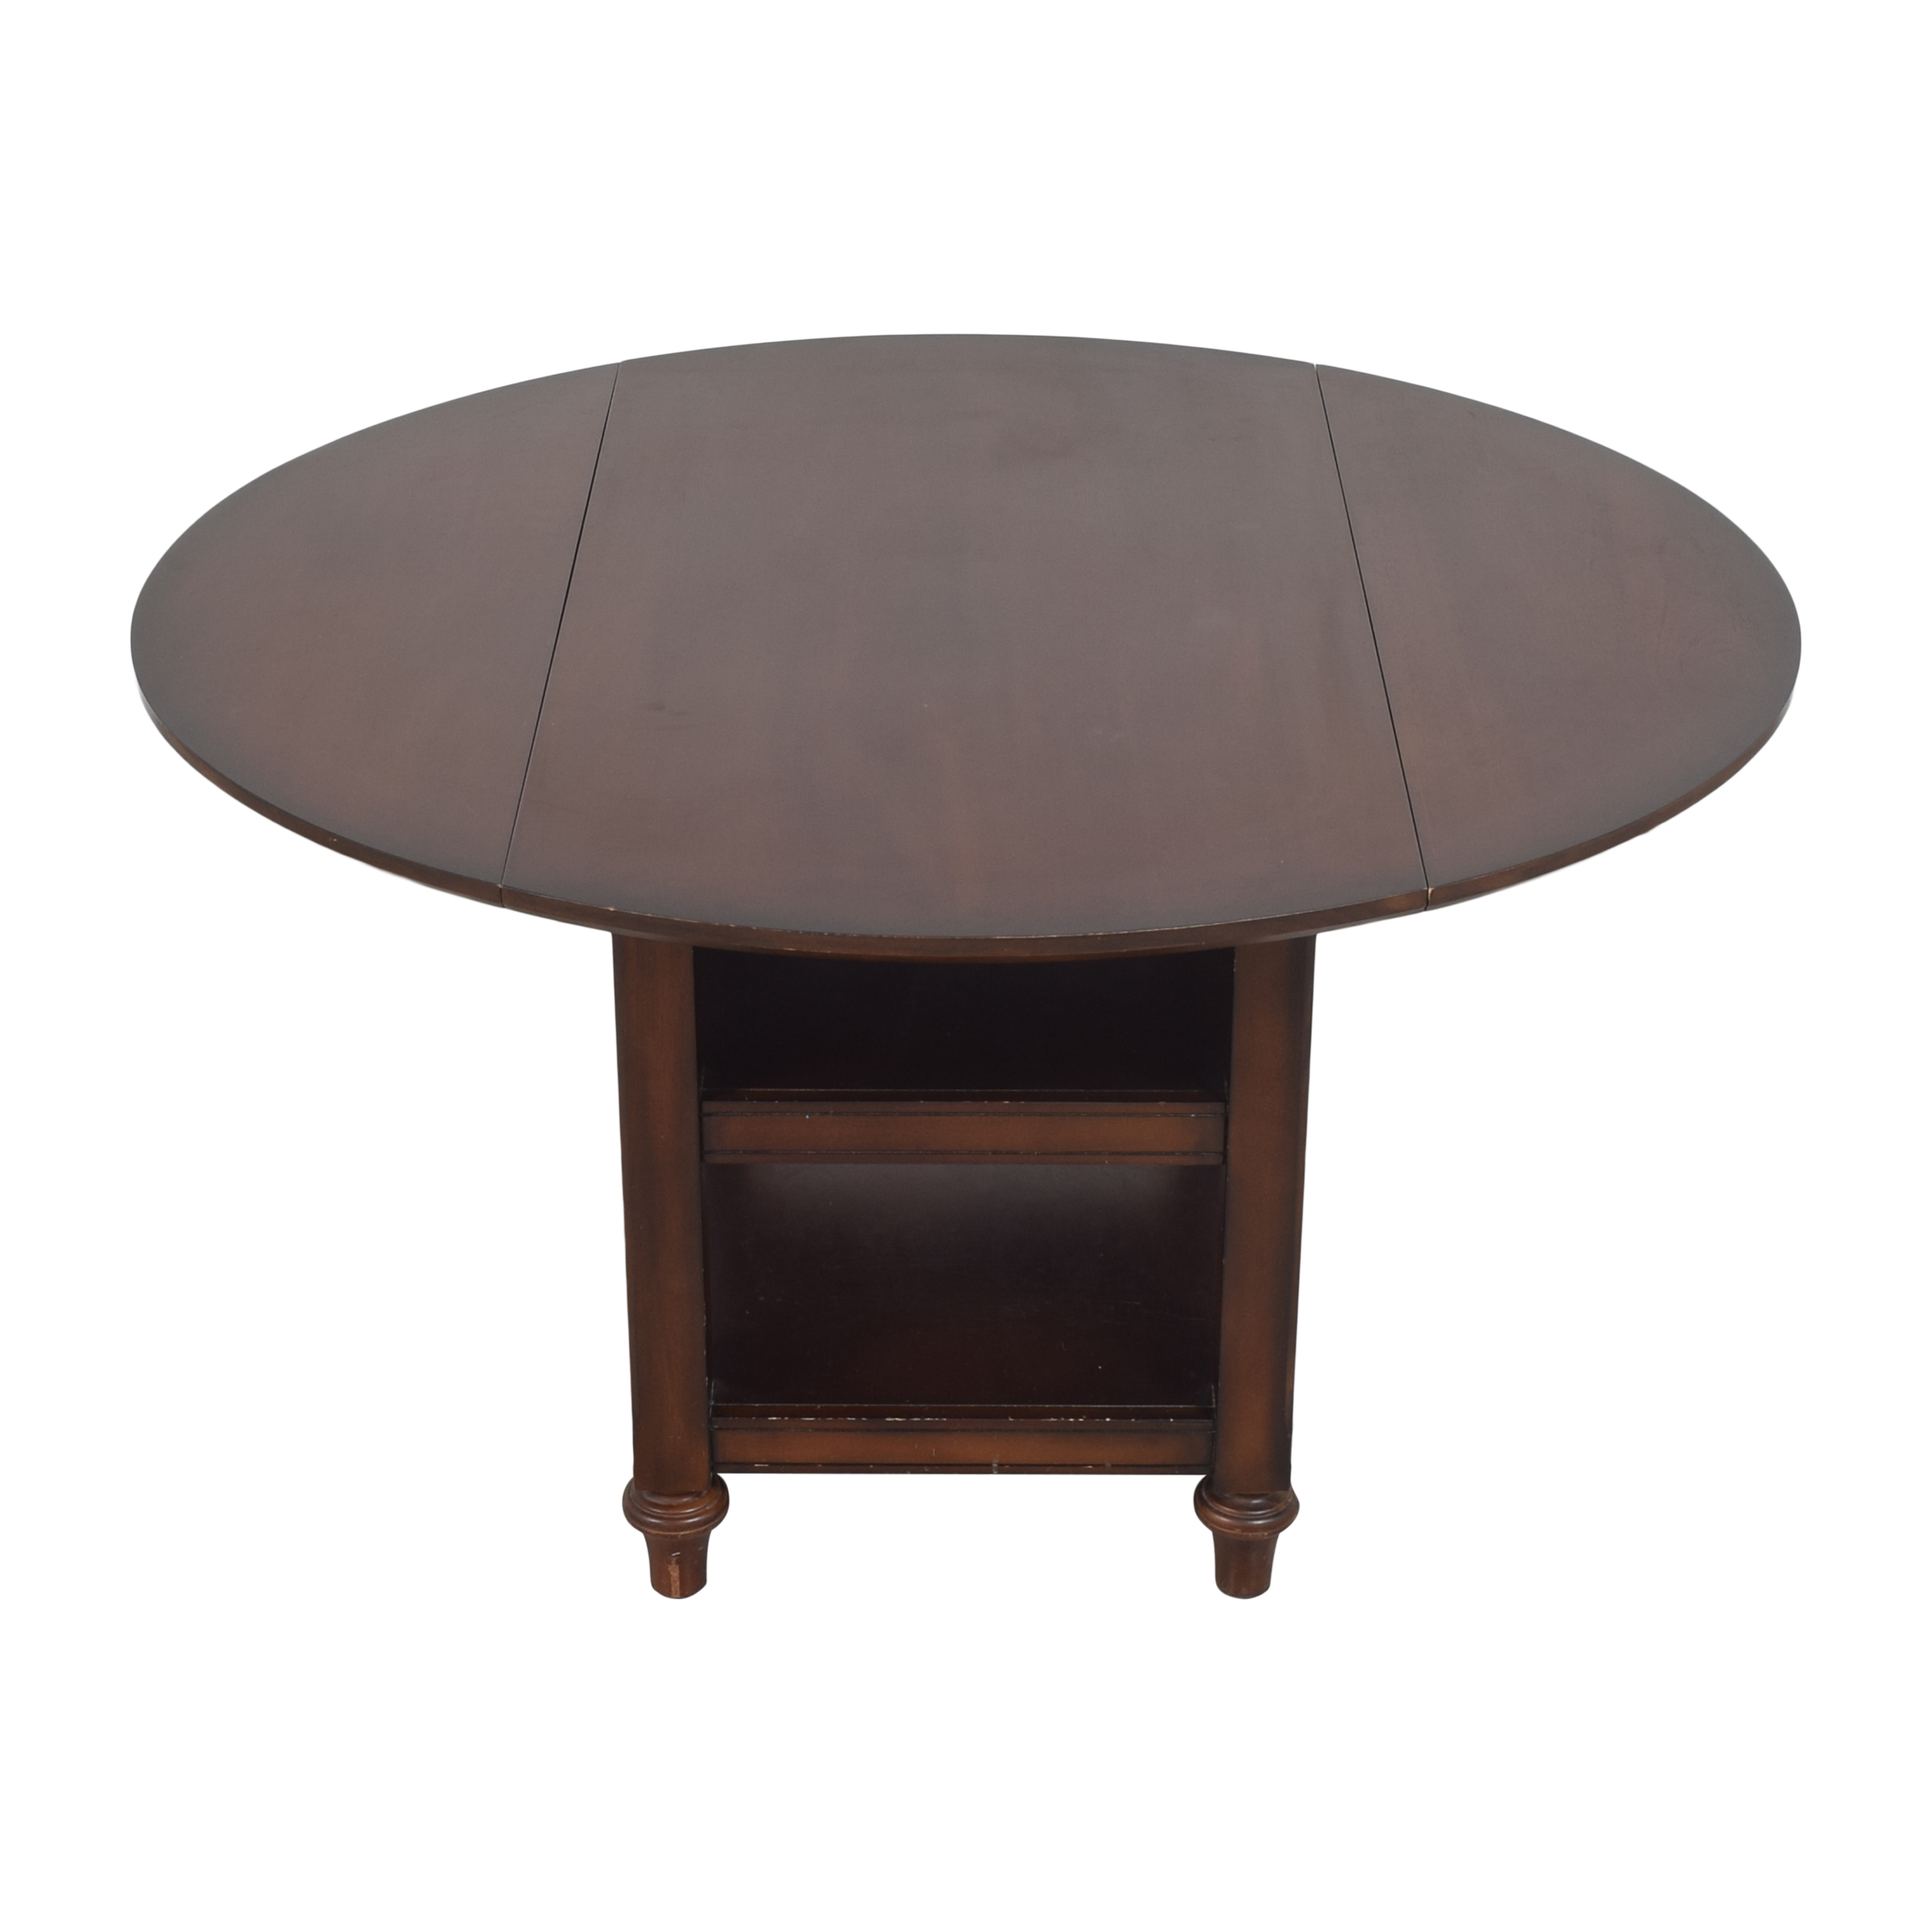 Pottery Barn Pottery Barn Shayne Round Drop Leaf Dining Table dimensions